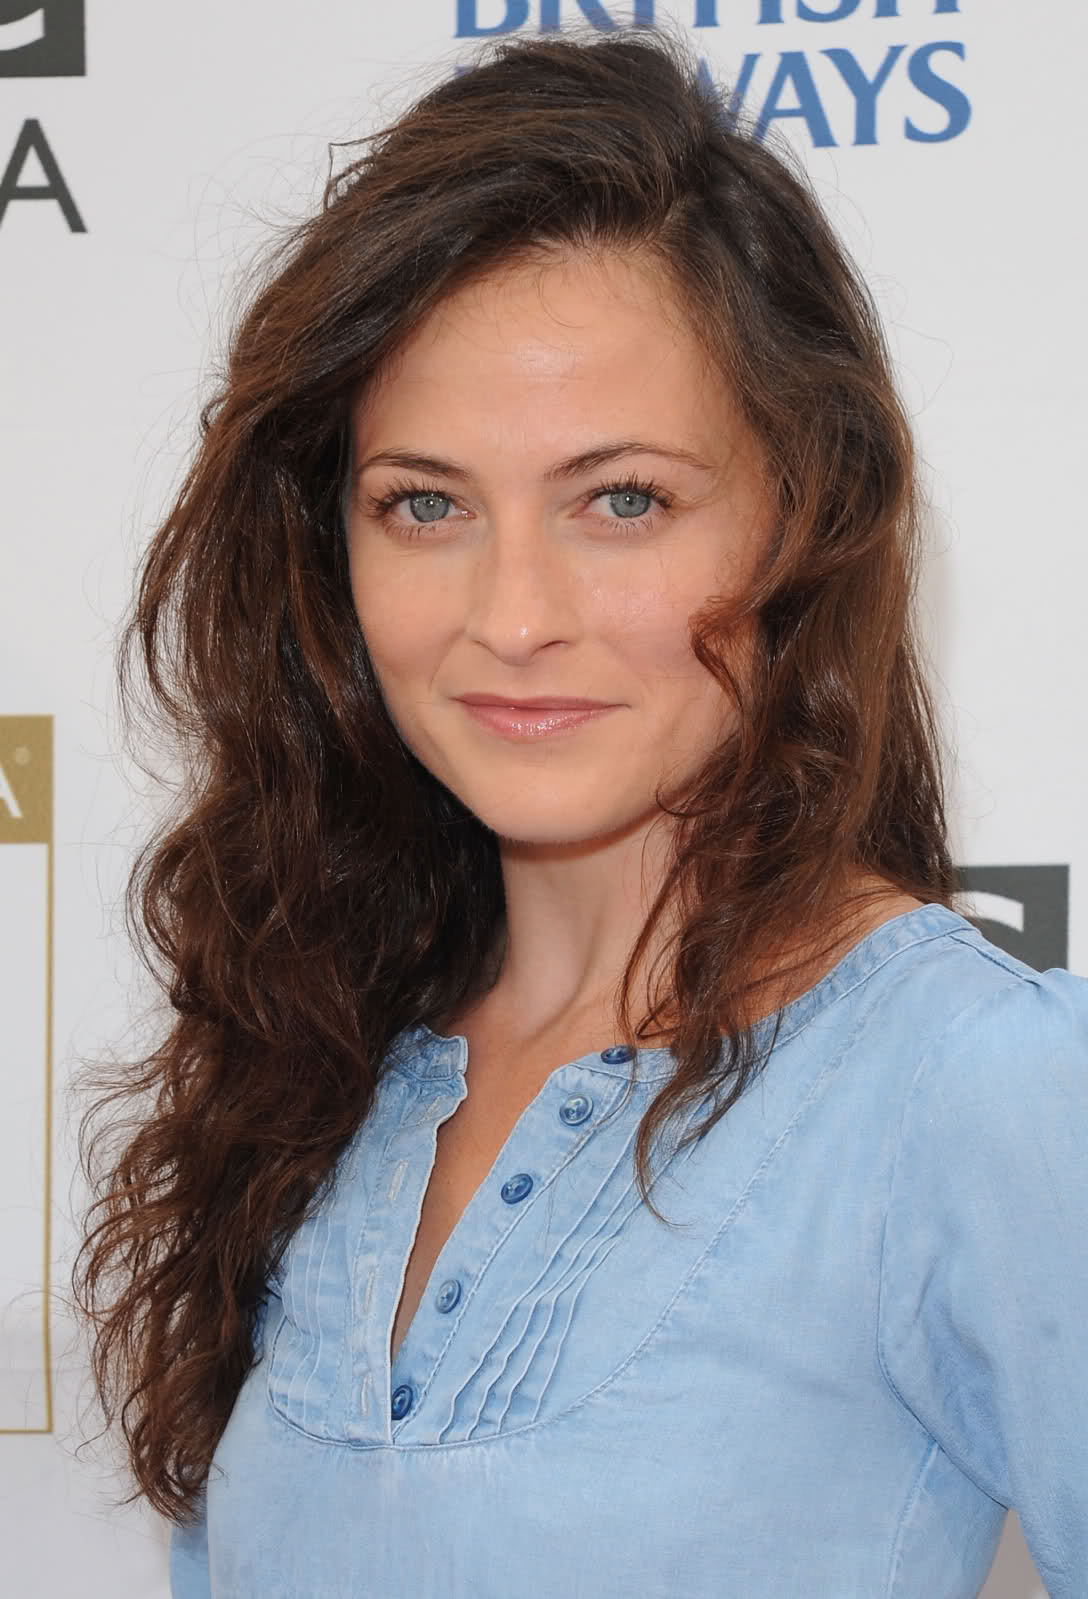 lara pulver doctor who - photo #8